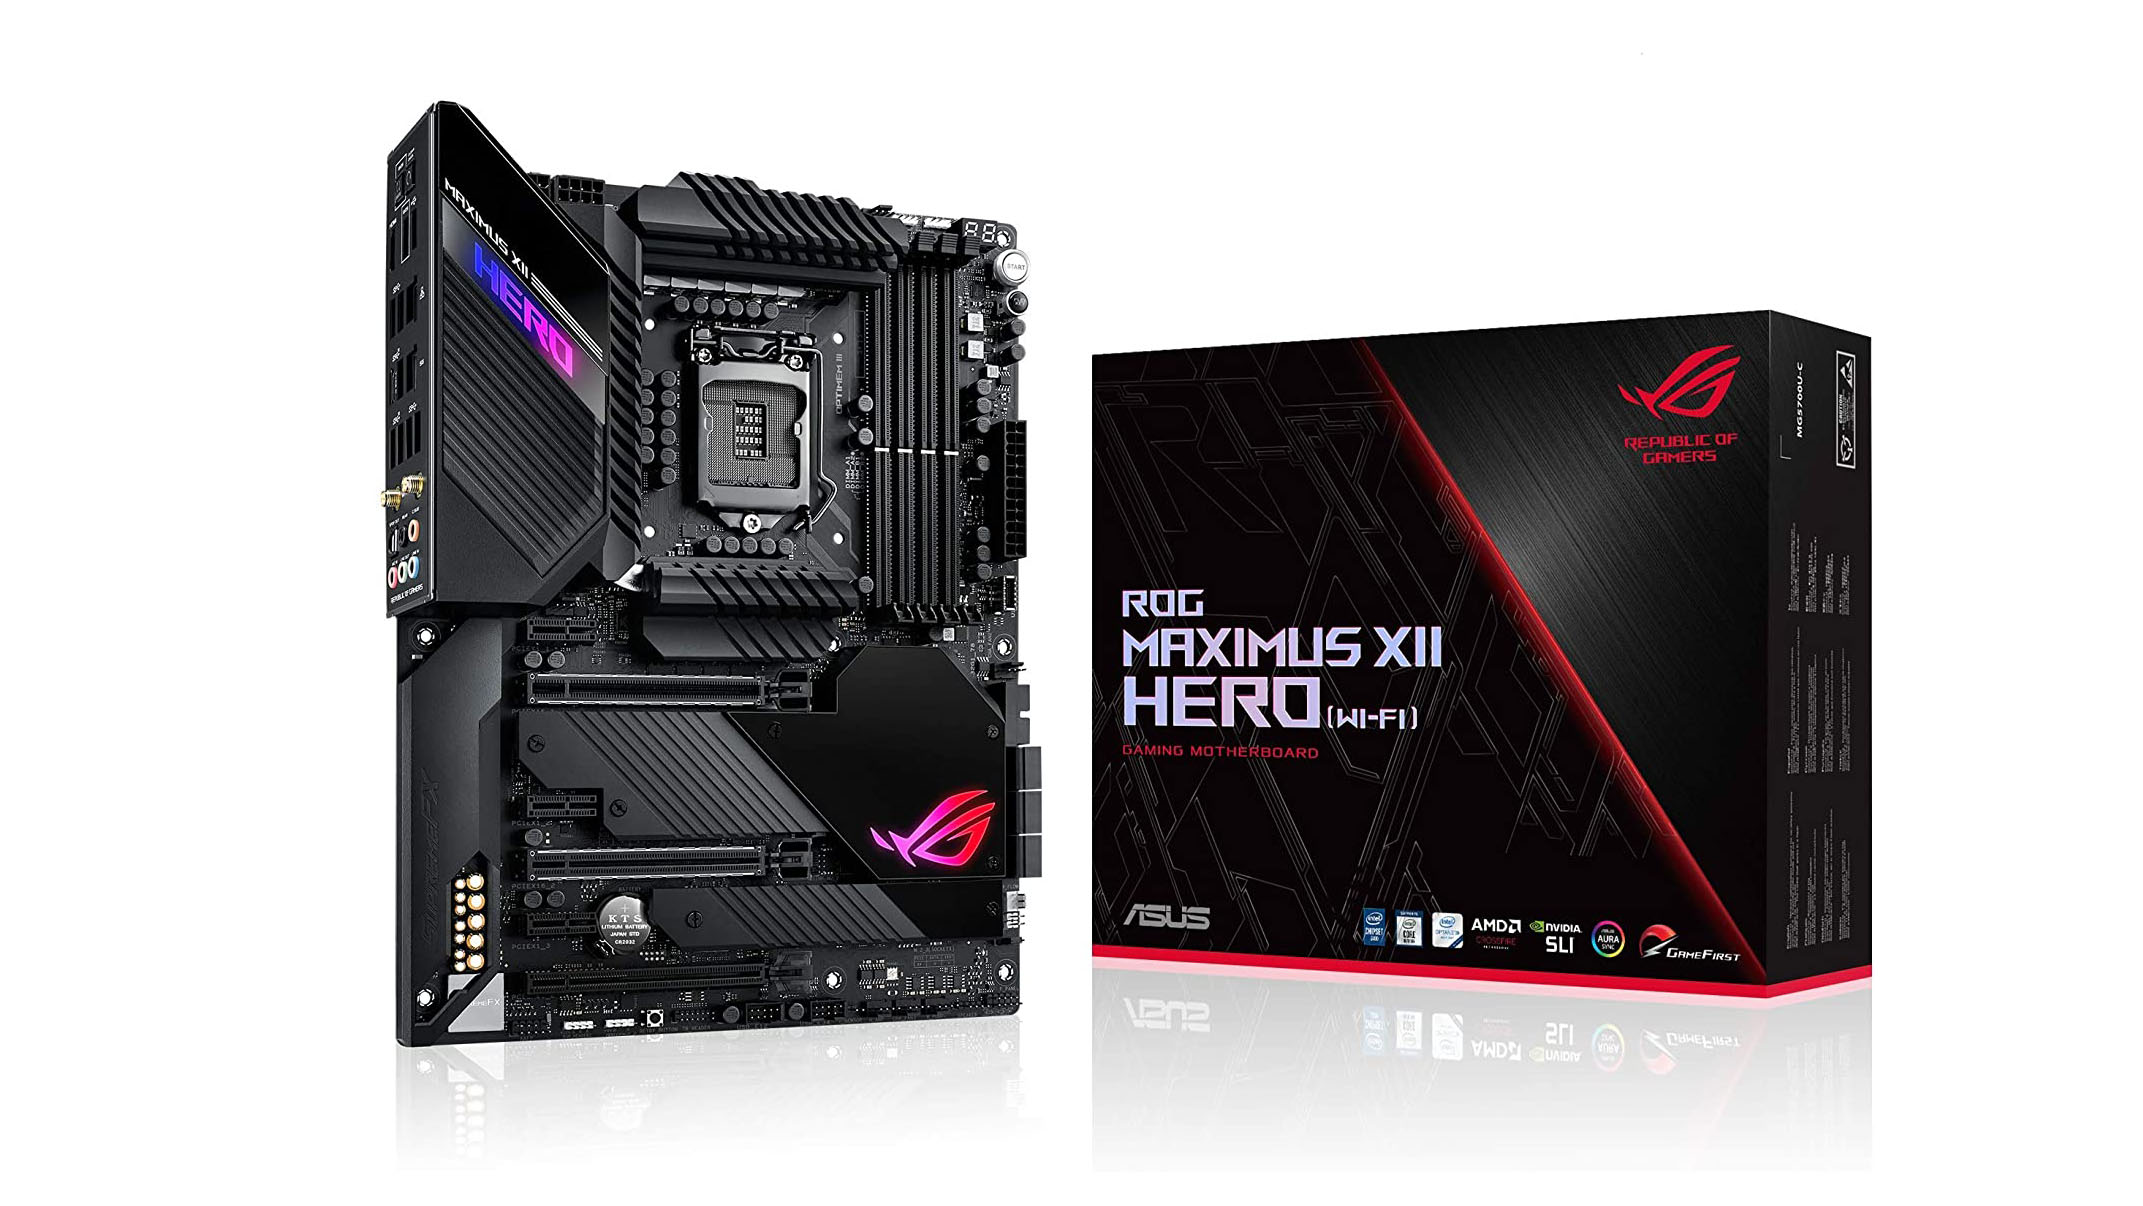 Best motherboards: Asus ROG Maximus XII HERO